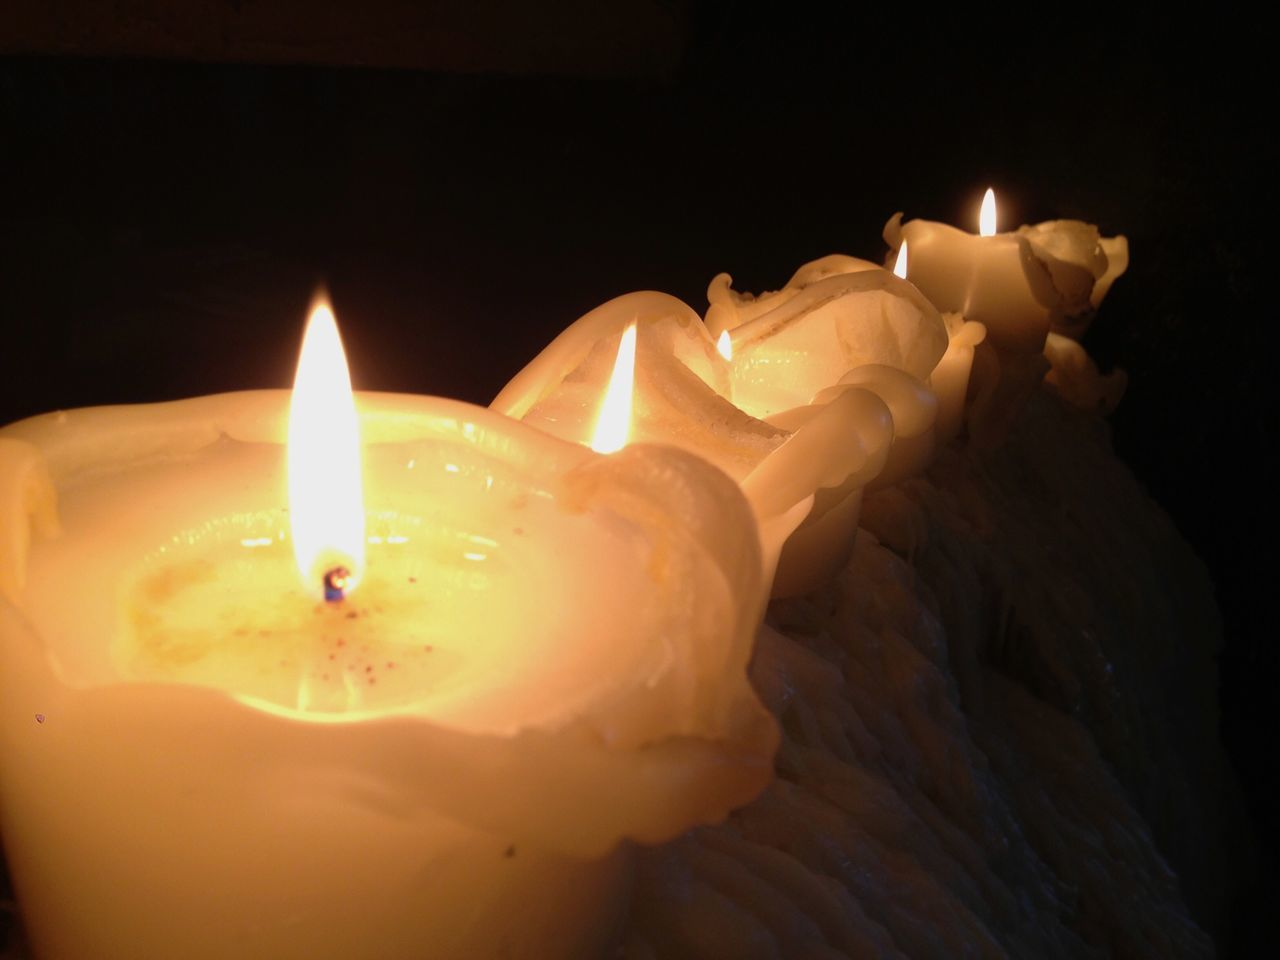 Four Candles. Candles Flames Burning Bright White Light In Dark Wax Melting Liquid